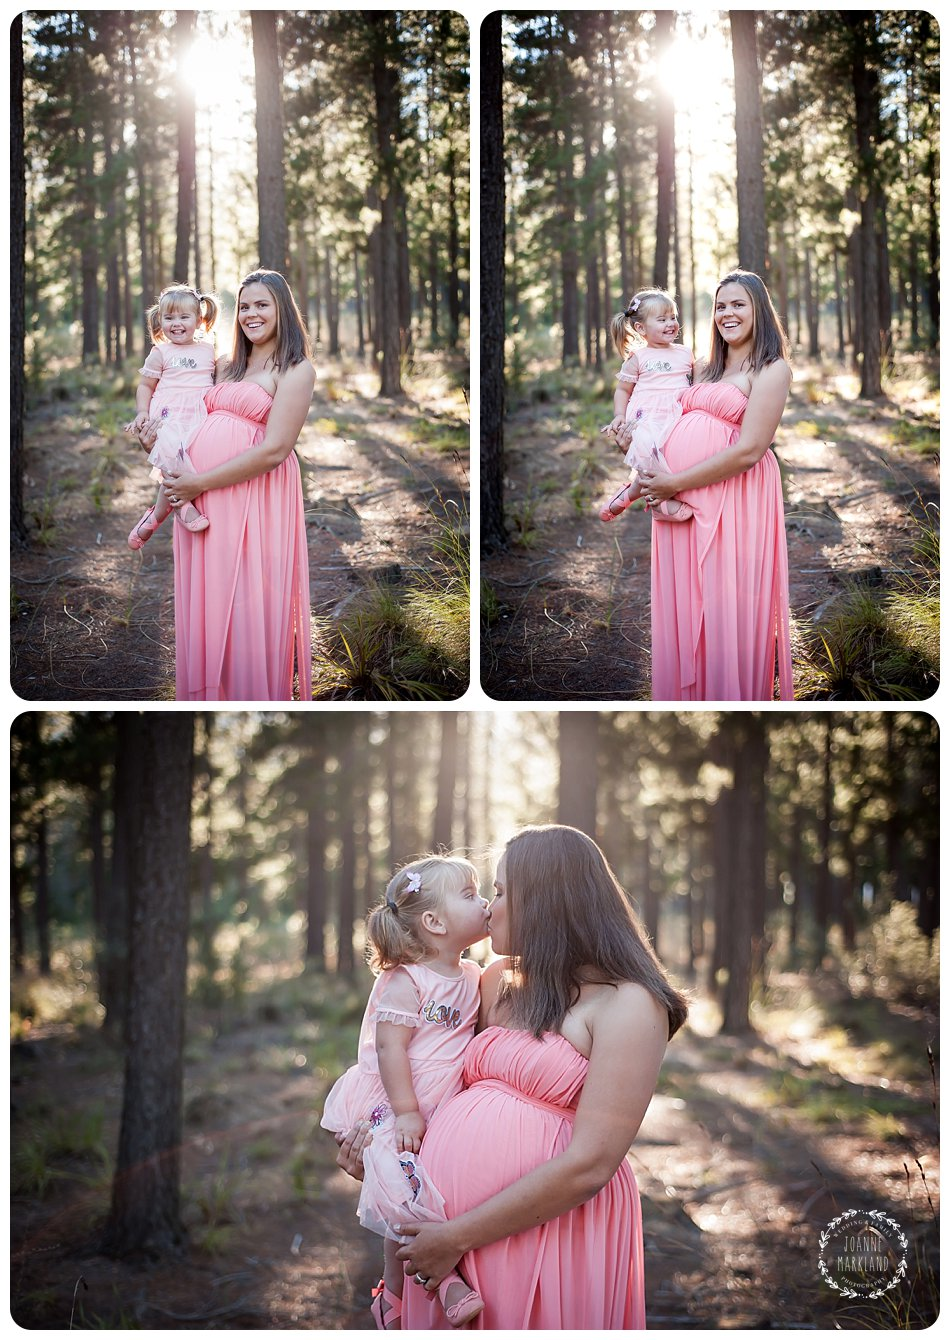 cape town maternity portraits, cape town family photographer, maternity portraits, preggie belly, baby bump, joanne markland photography, family photography cape town